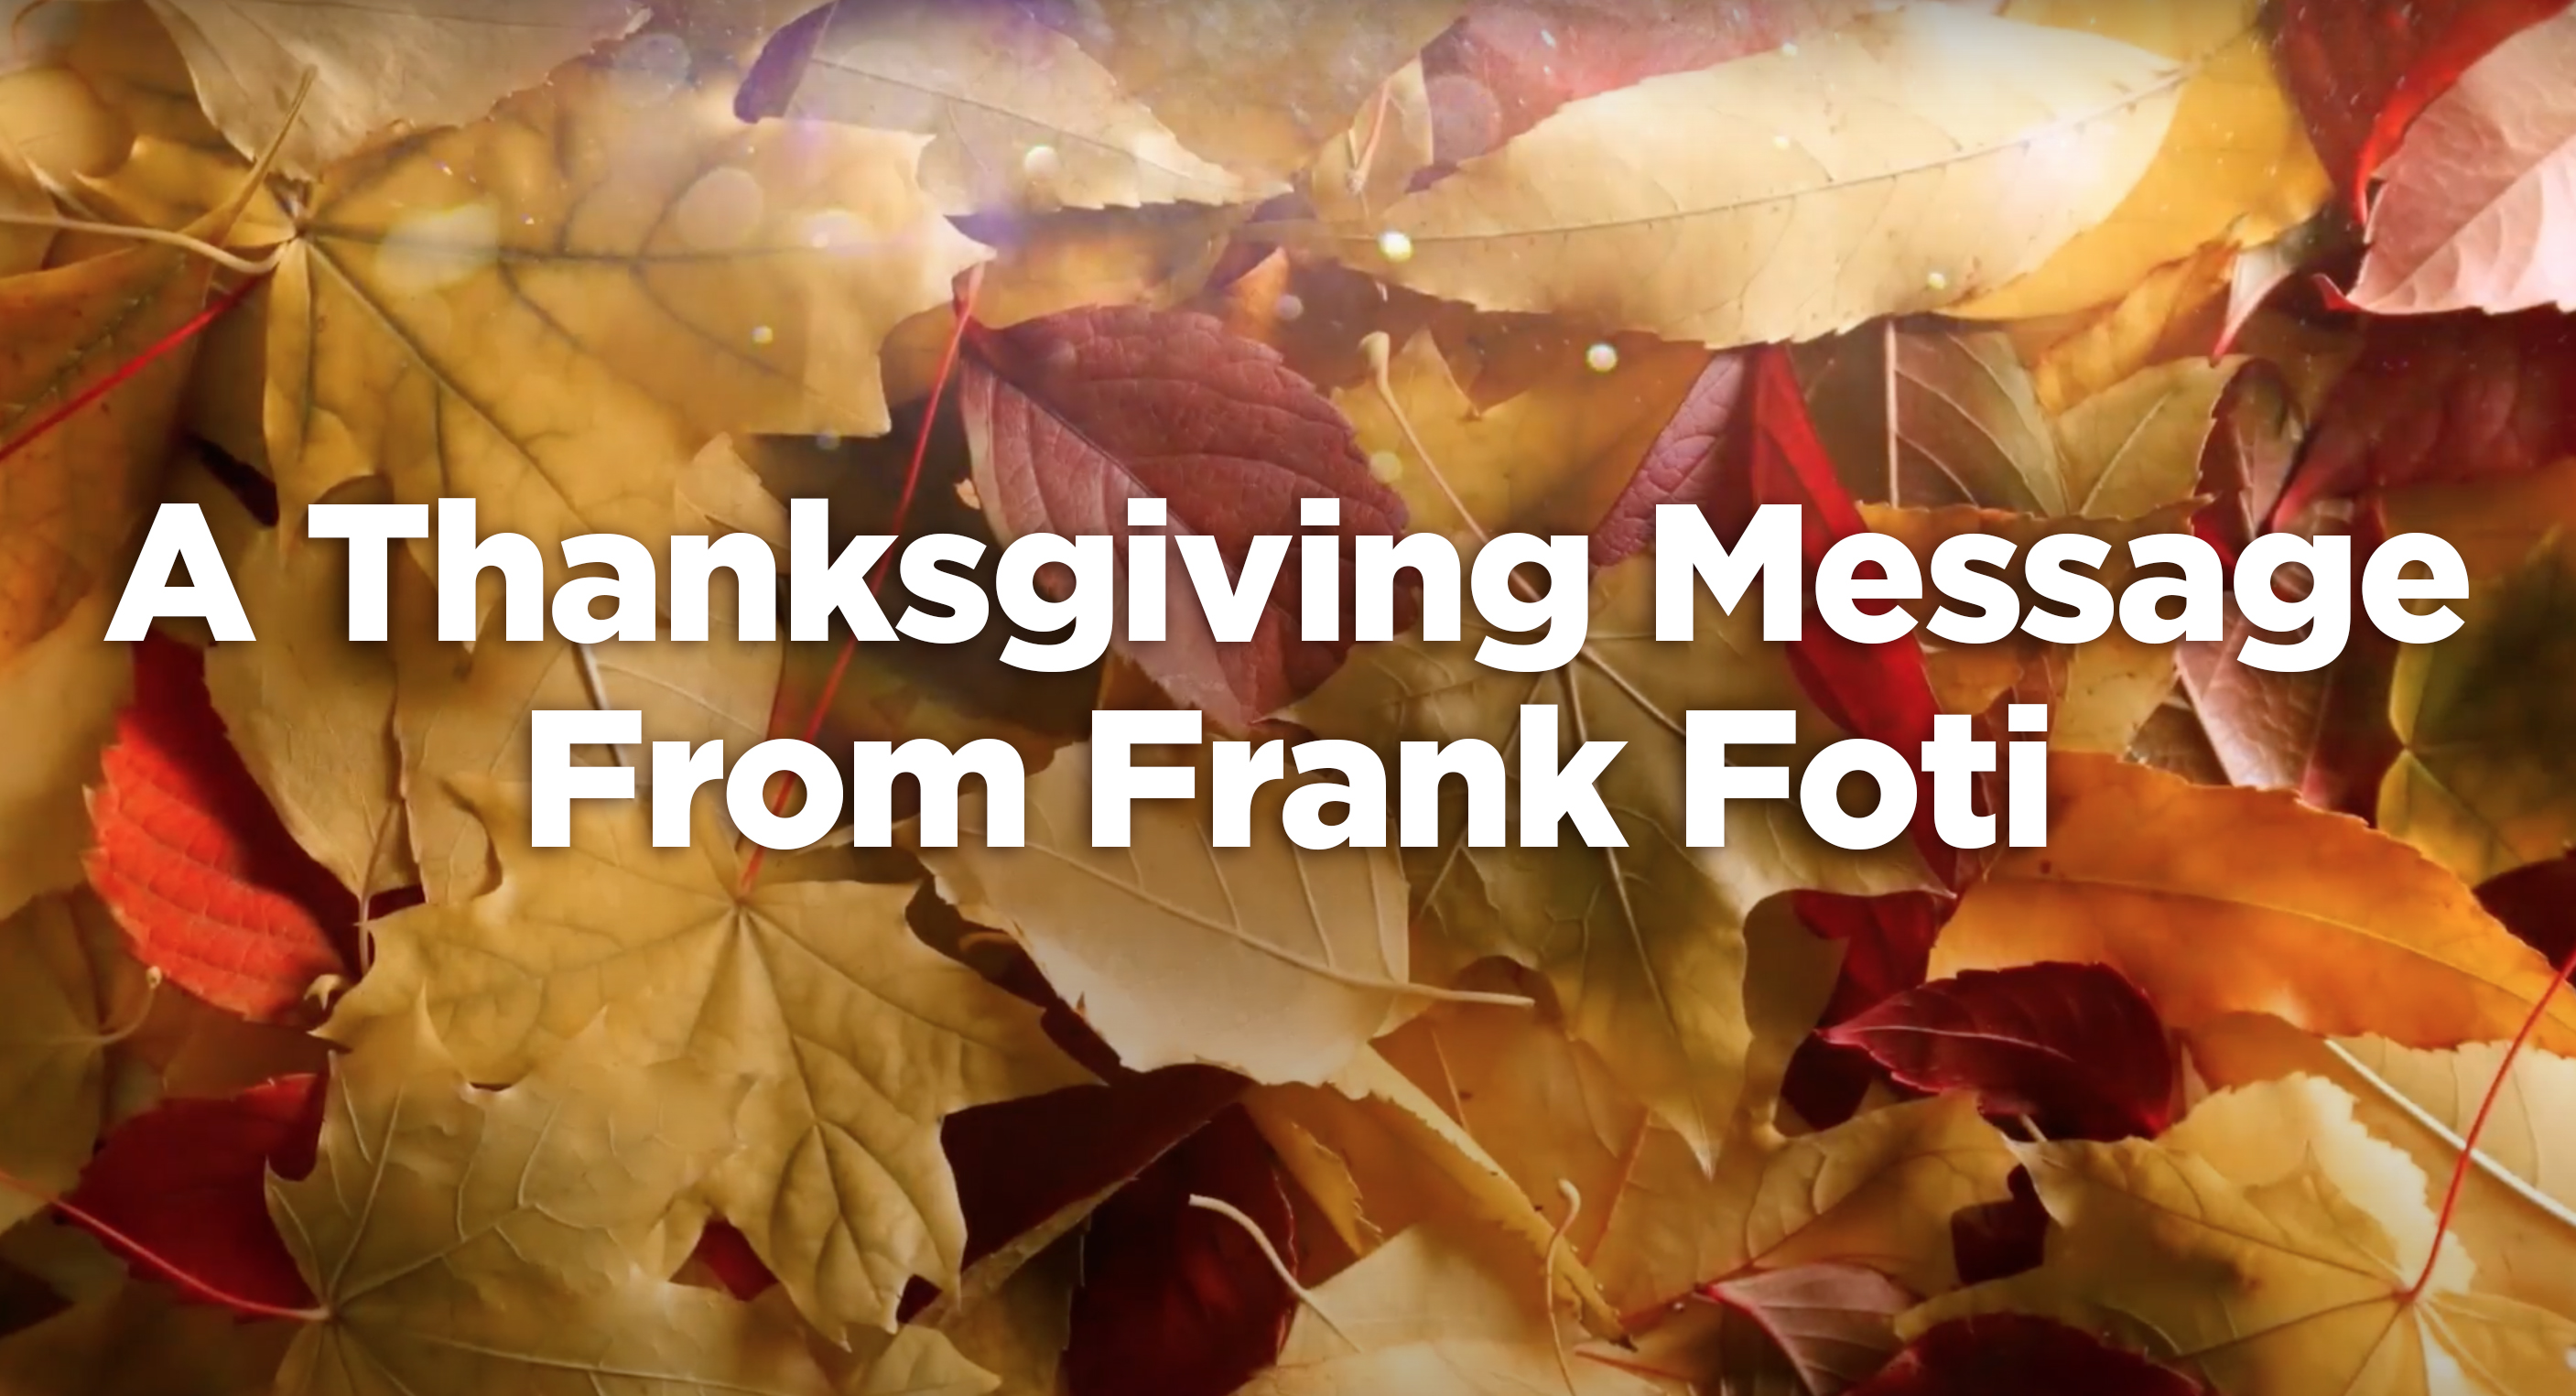 Video: A Thanksgiving Message From Frank Foti